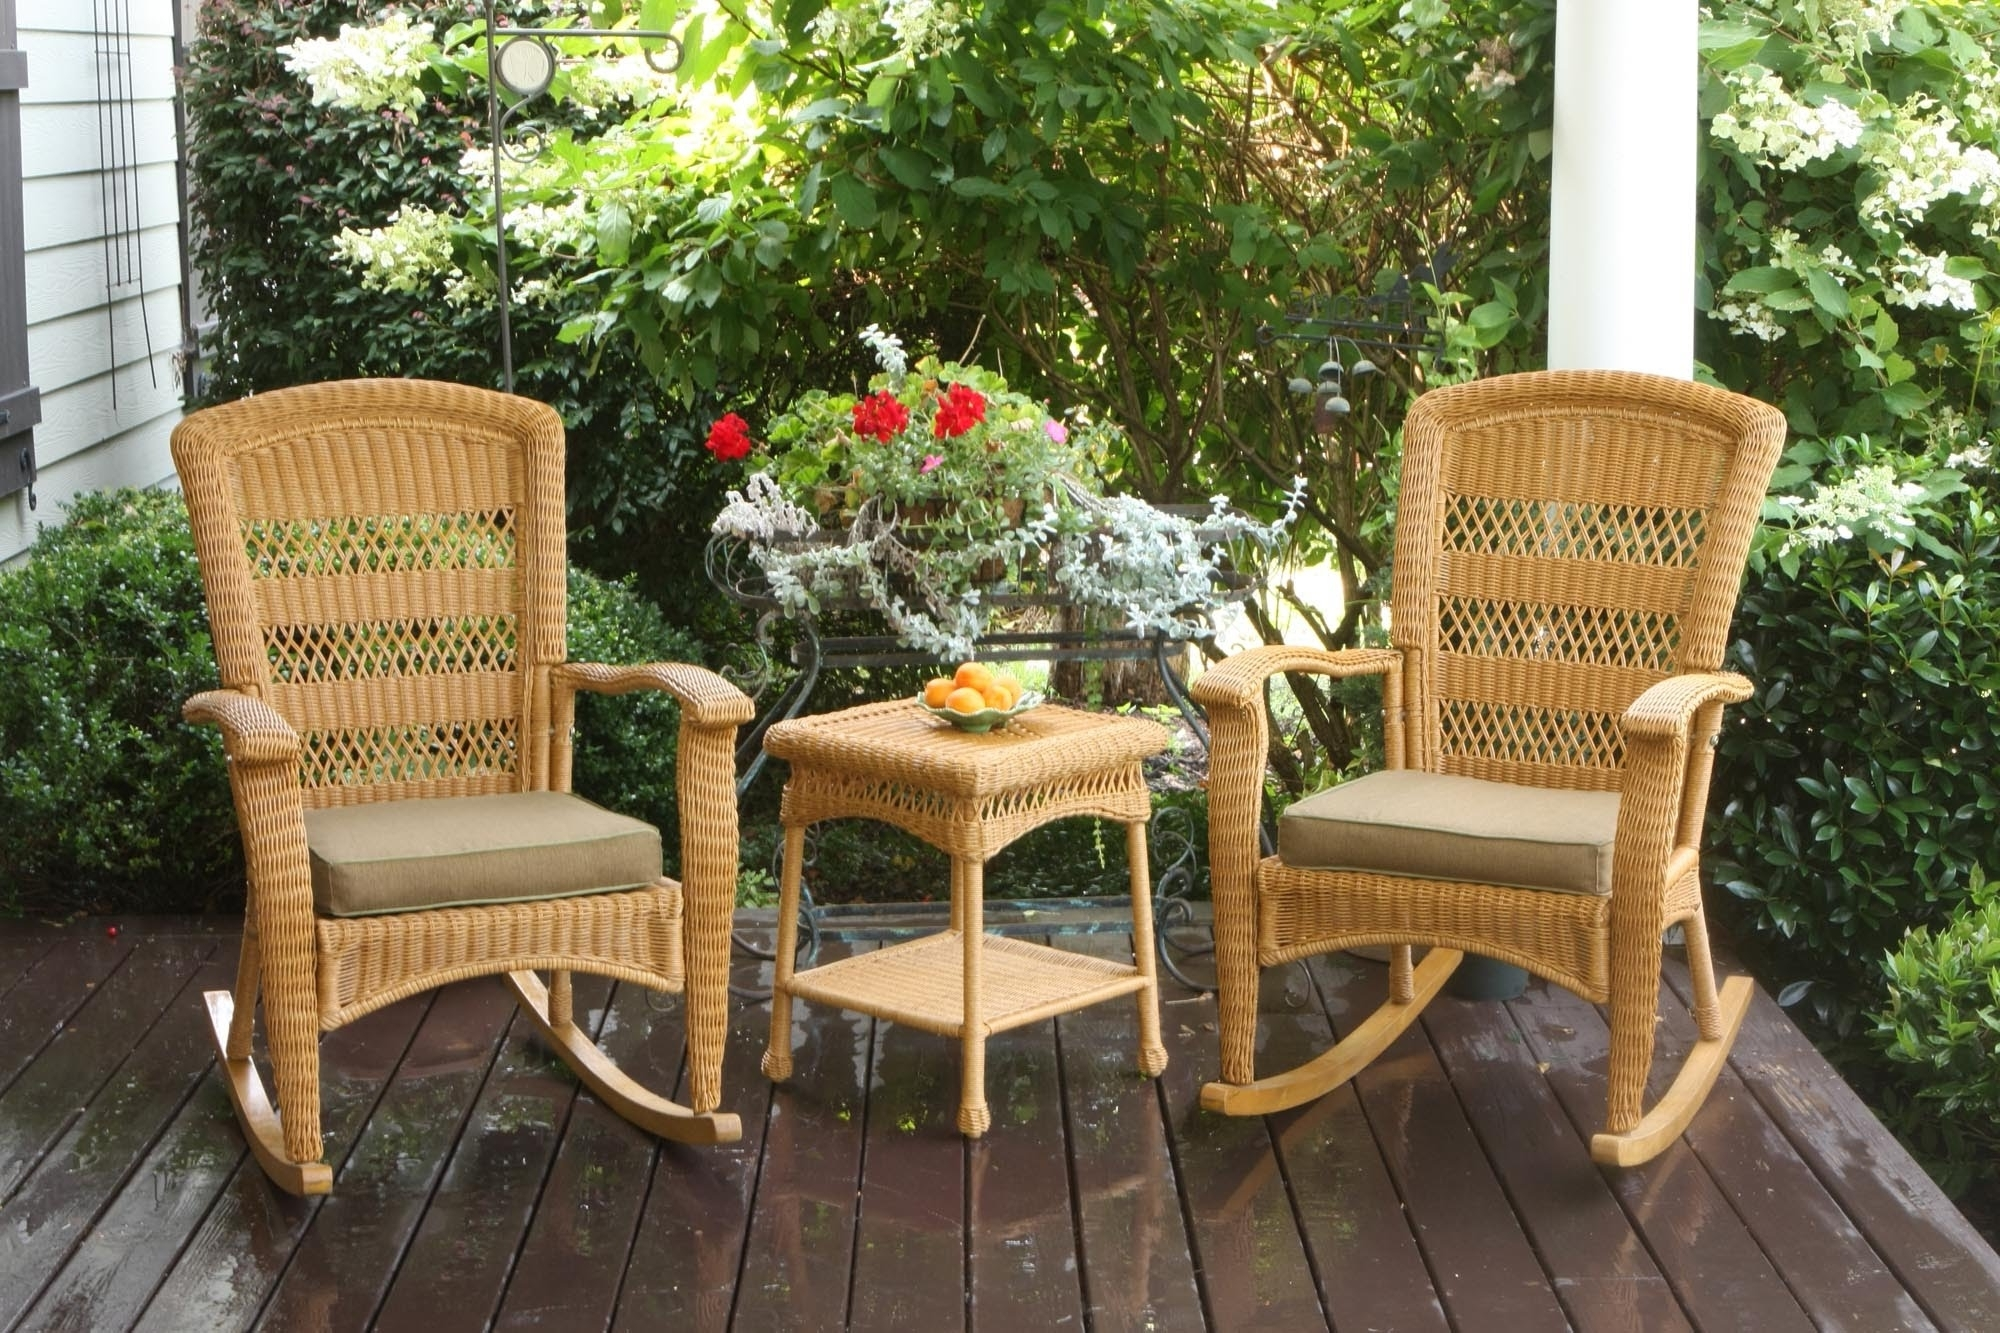 Portside Plantation Rocking Chair Set Tortuga Outdoor – Youtube Regarding 2018 Outdoor Wicker Rocking Chairs With Cushions (View 13 of 15)